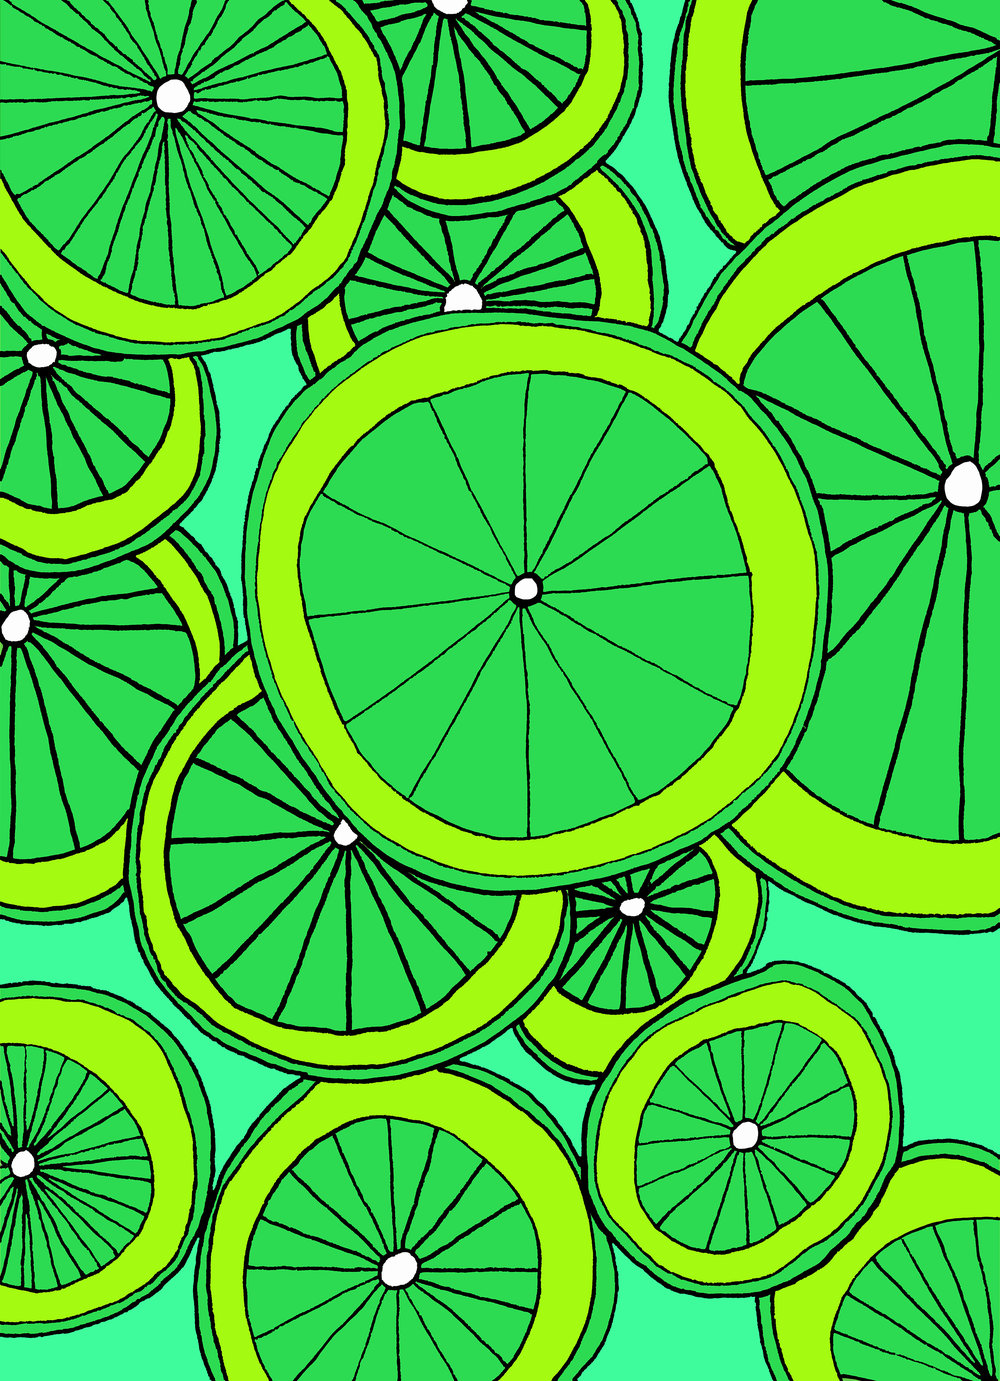 Limes Illustration by Emma Freeman Designs